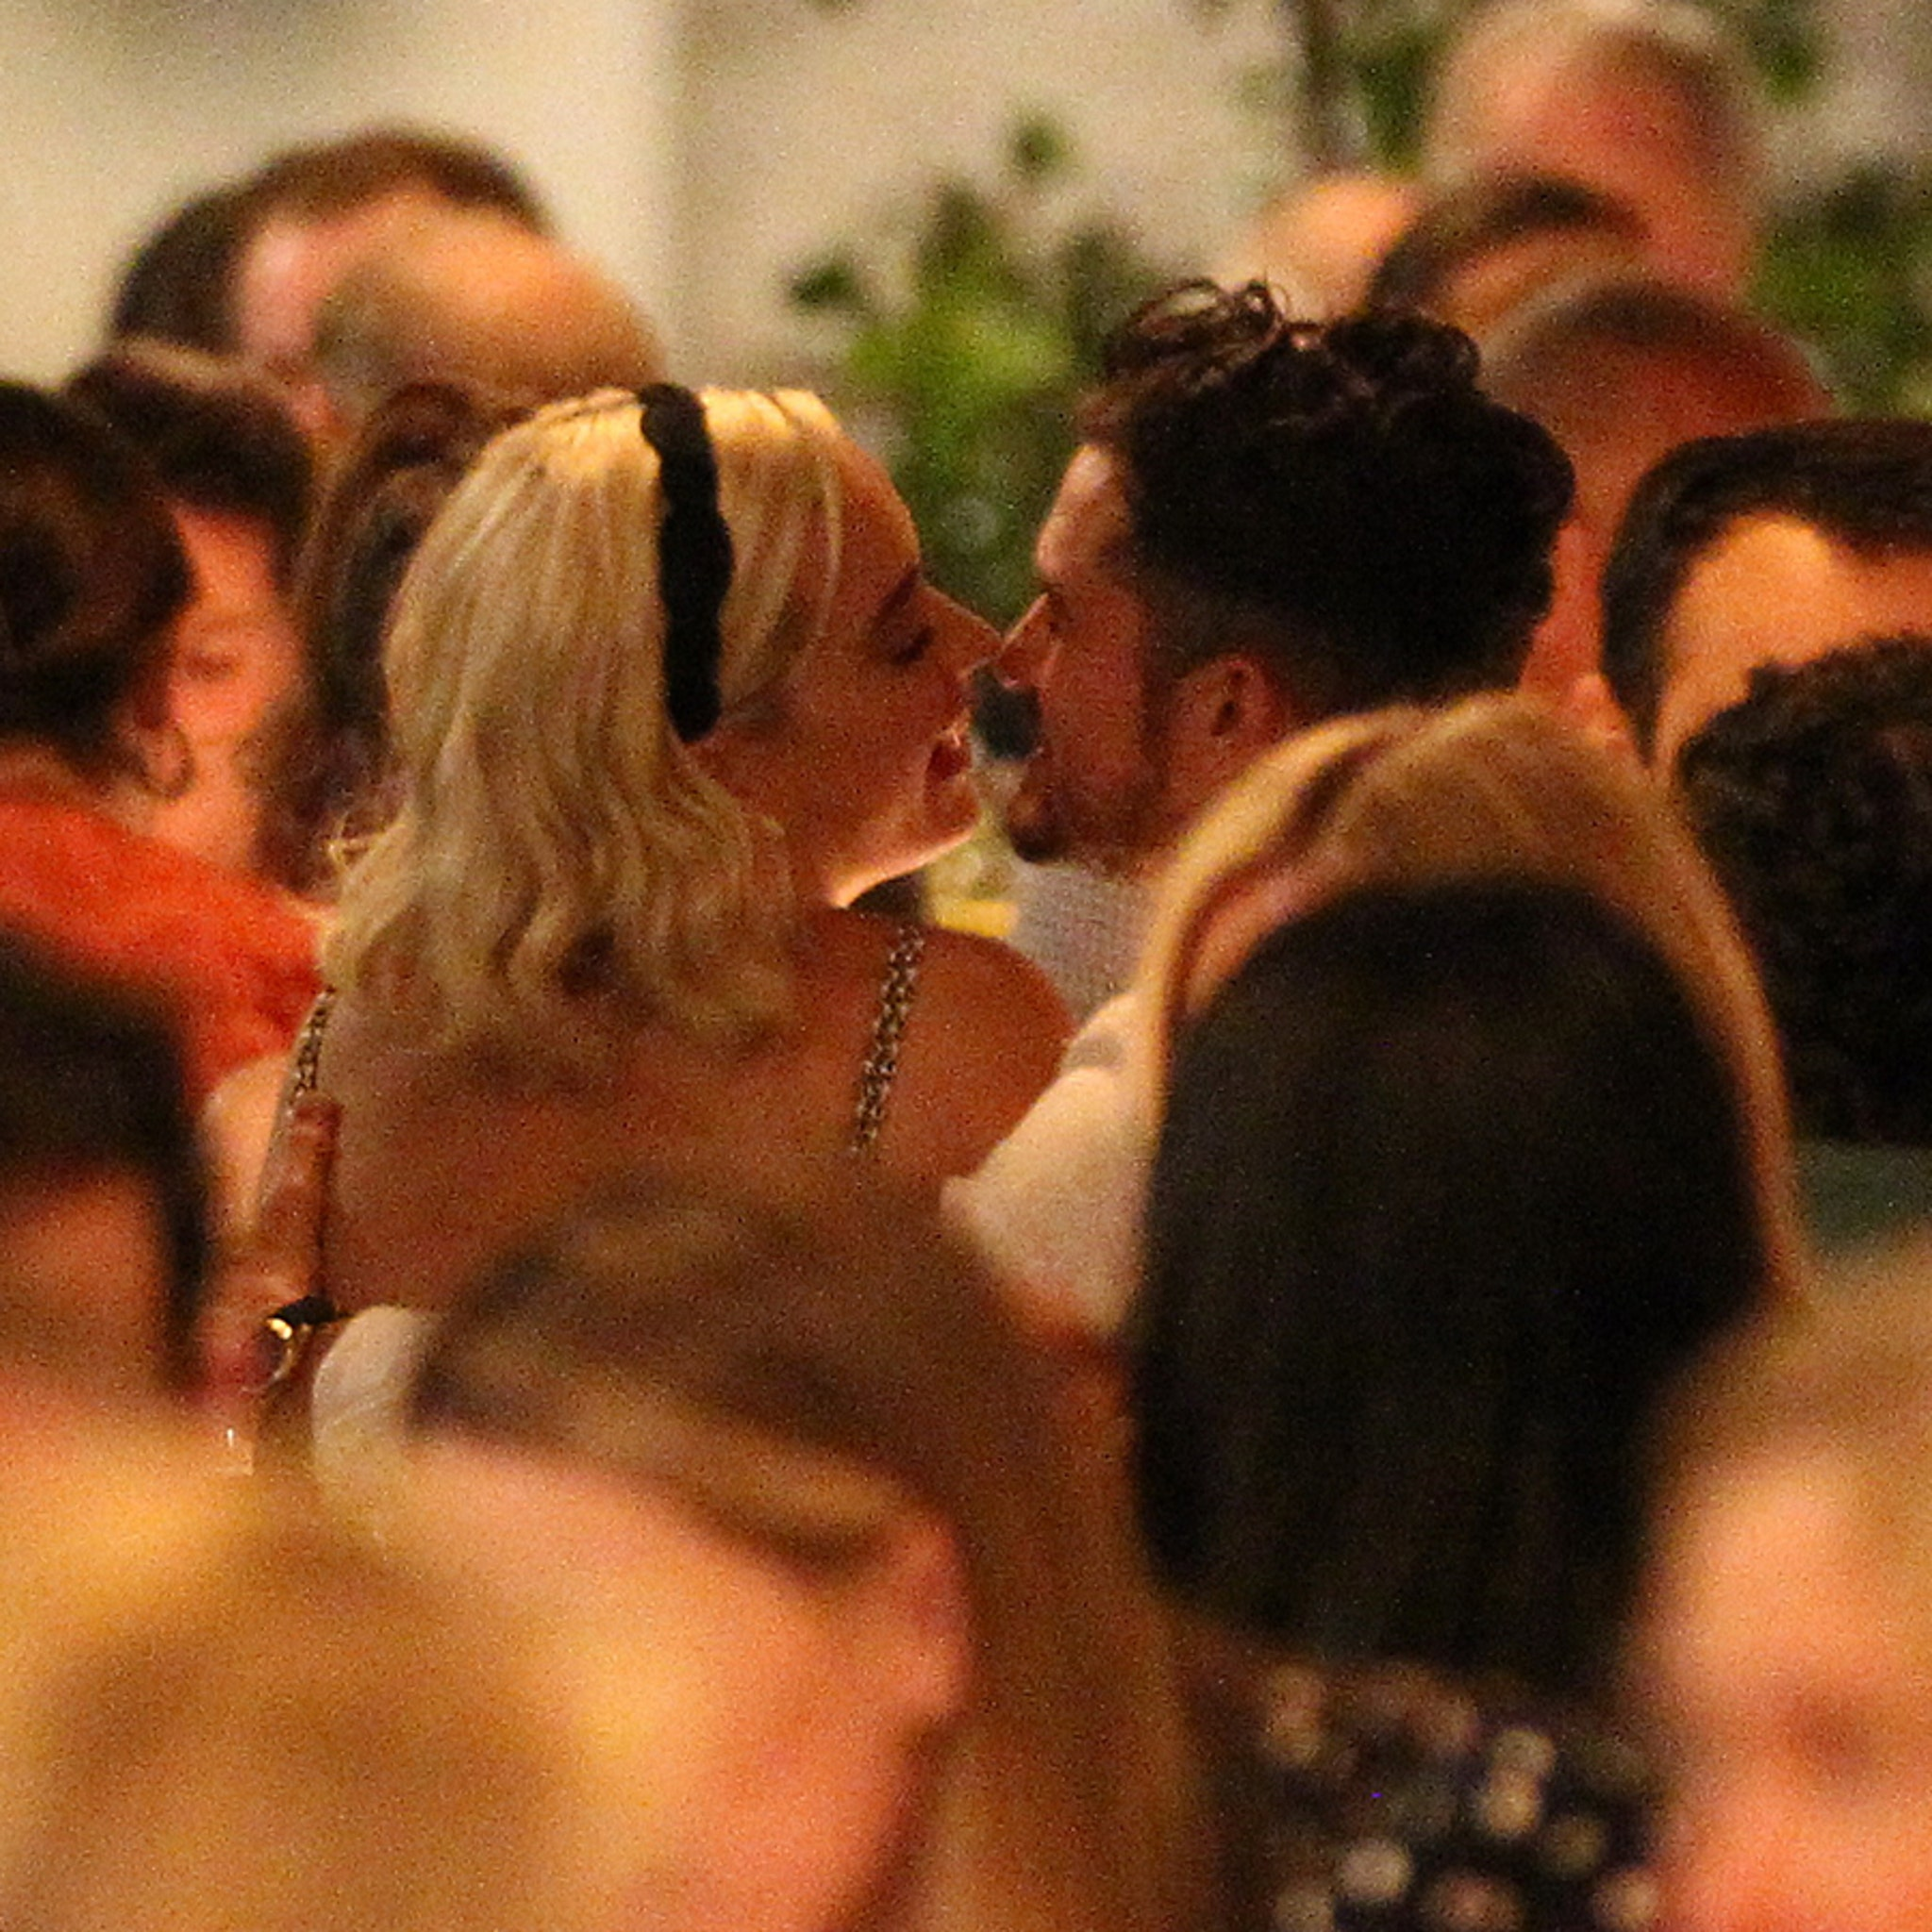 Katy Perry and Orlando Bloom Attend Pre-Wedding Dinner in Rome